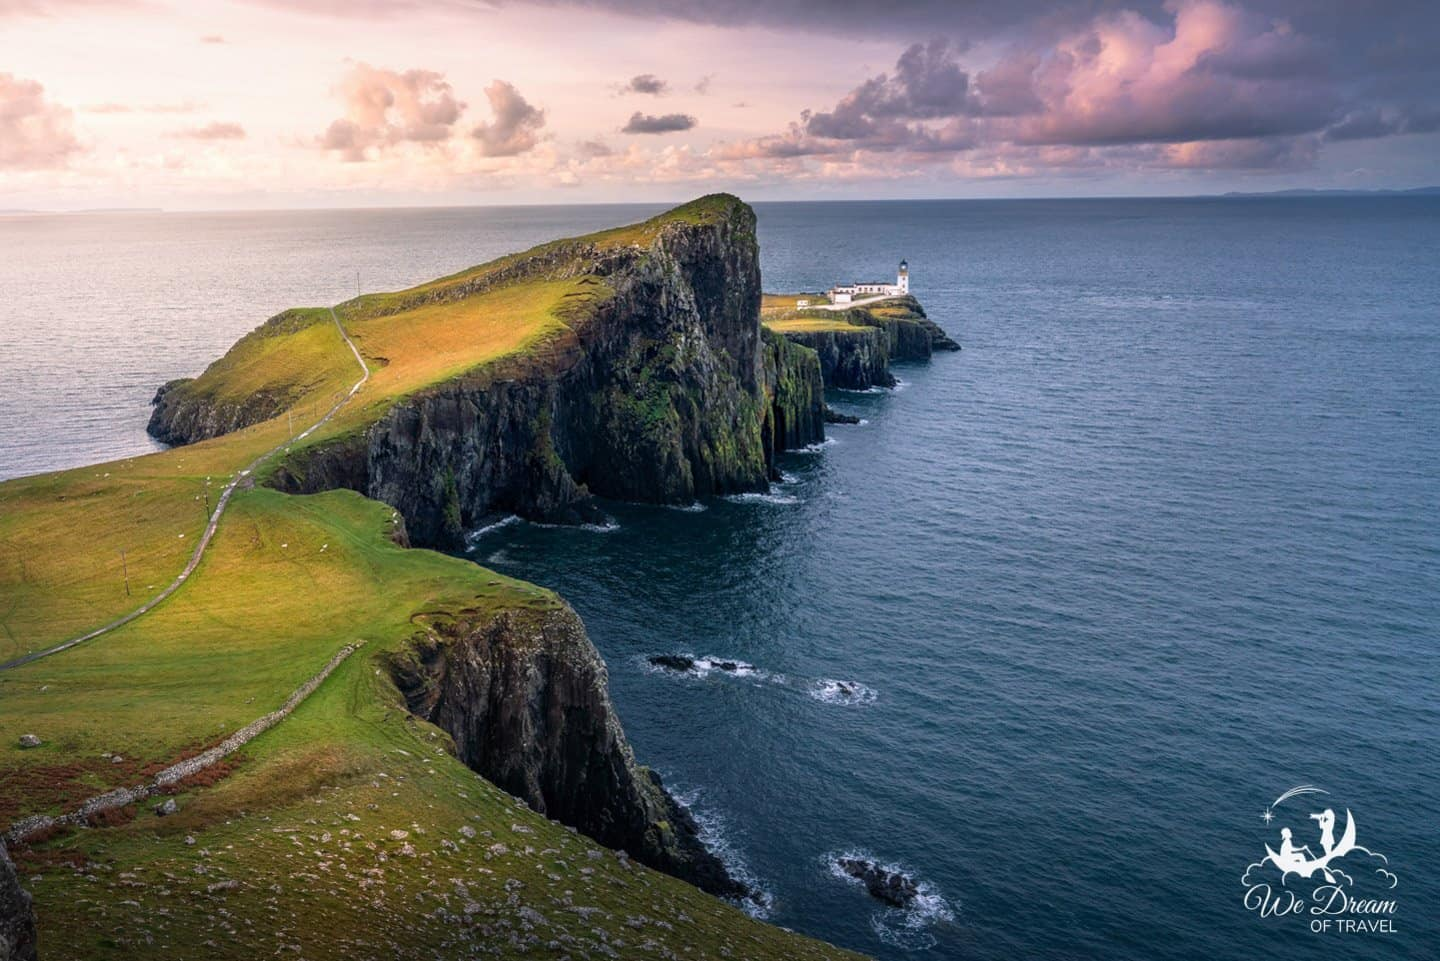 The impressive Neist Point Lighthouse provides the perfect subject for photographers needing to an already postcard-perfect scene.